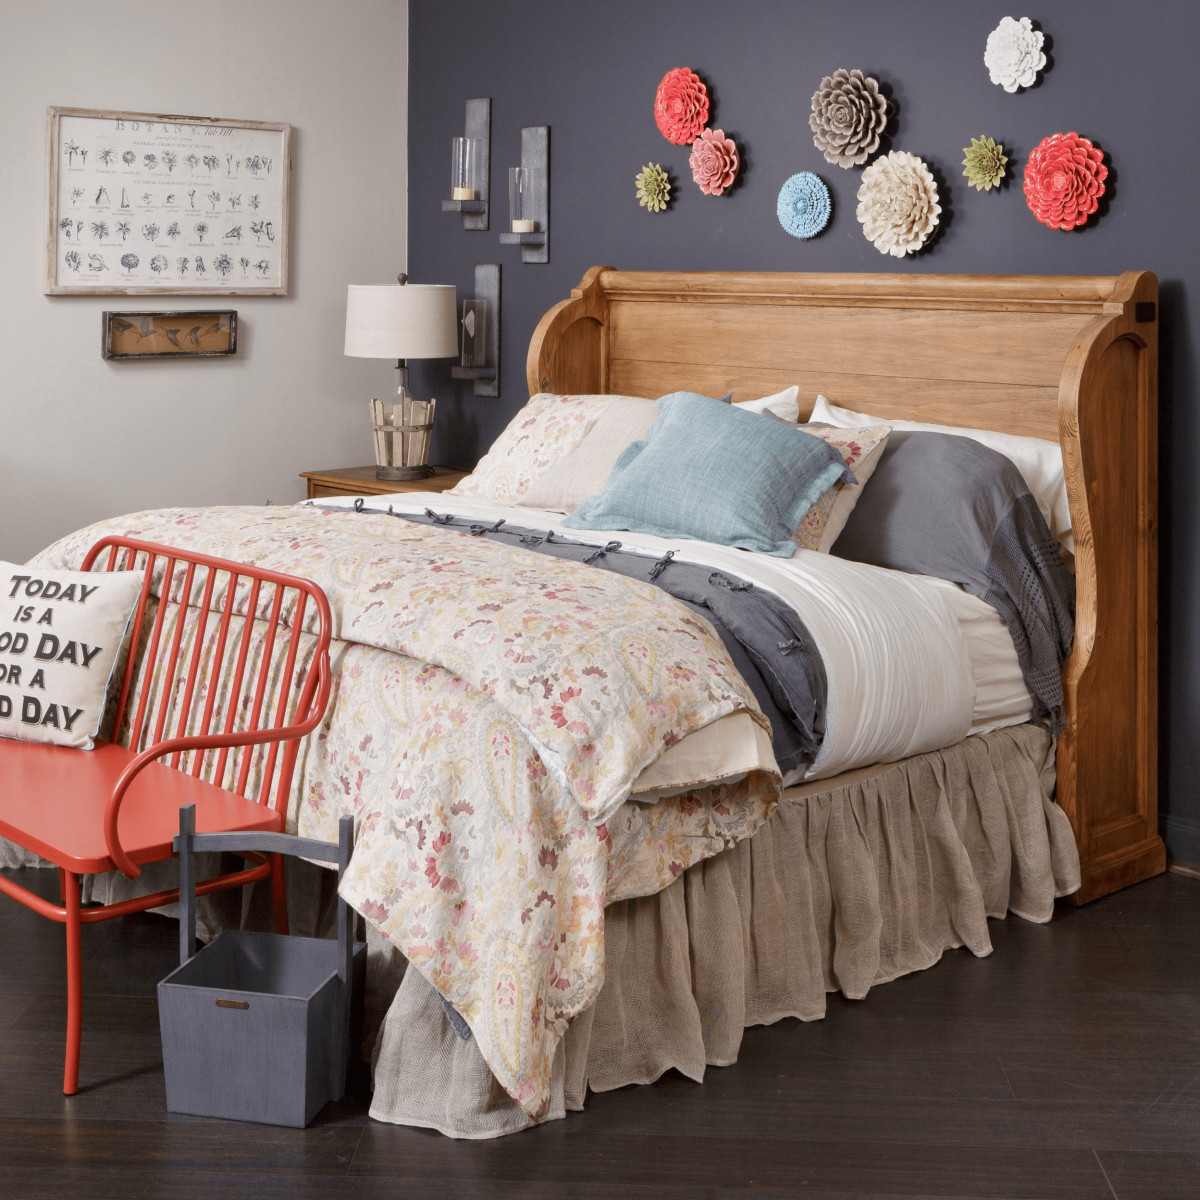 Rooms to Go Bedroom Set King New Hgtv Star S Furniture Collection Brings Fixer Upper Style to